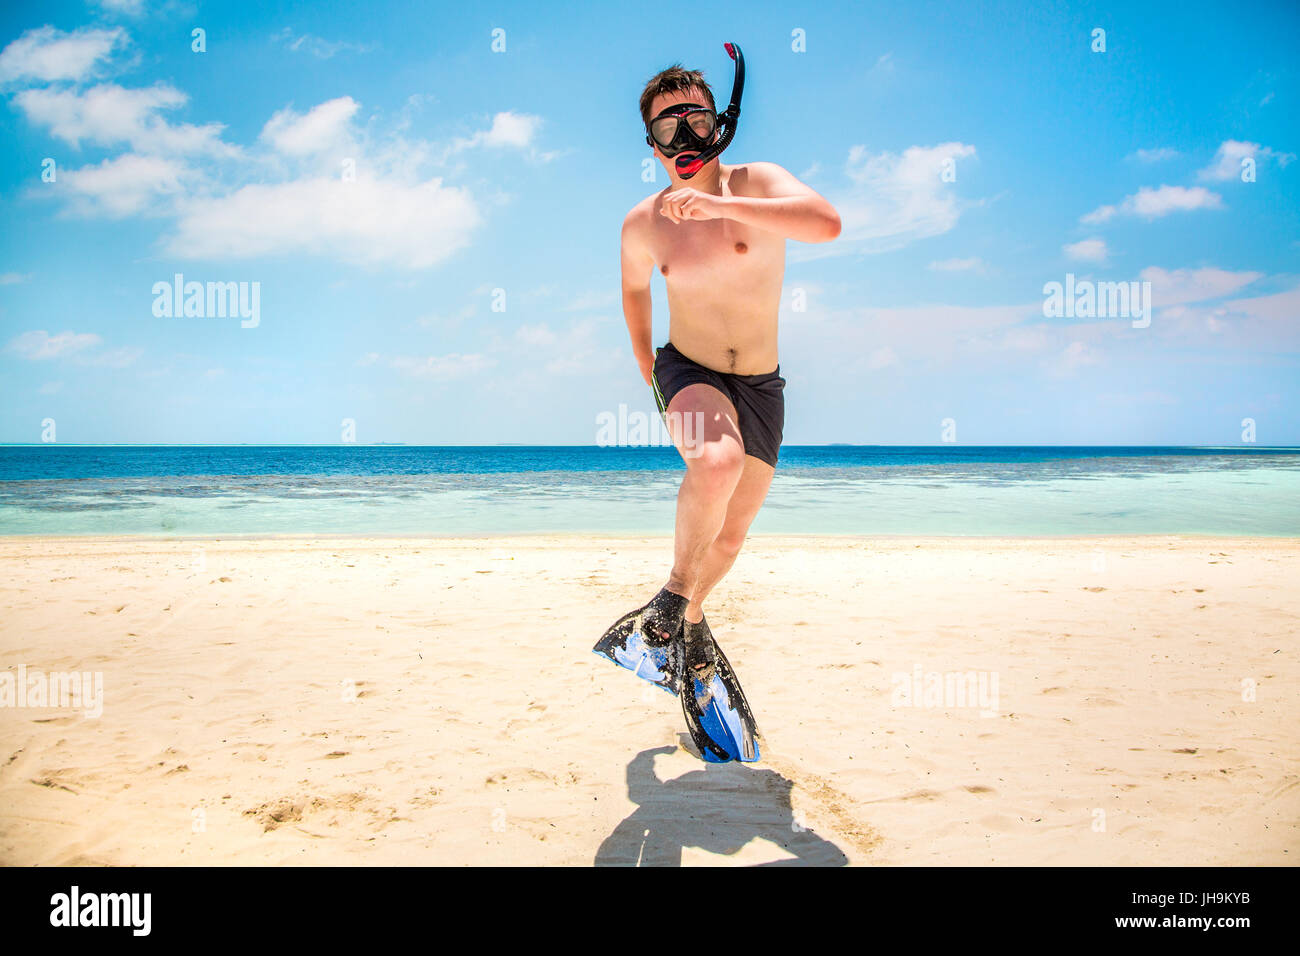 Funny Man Jumping In Flippers And Mask Holiday Vacation On A Tropical Beach At Maldives Islands Stock Photo Alamy